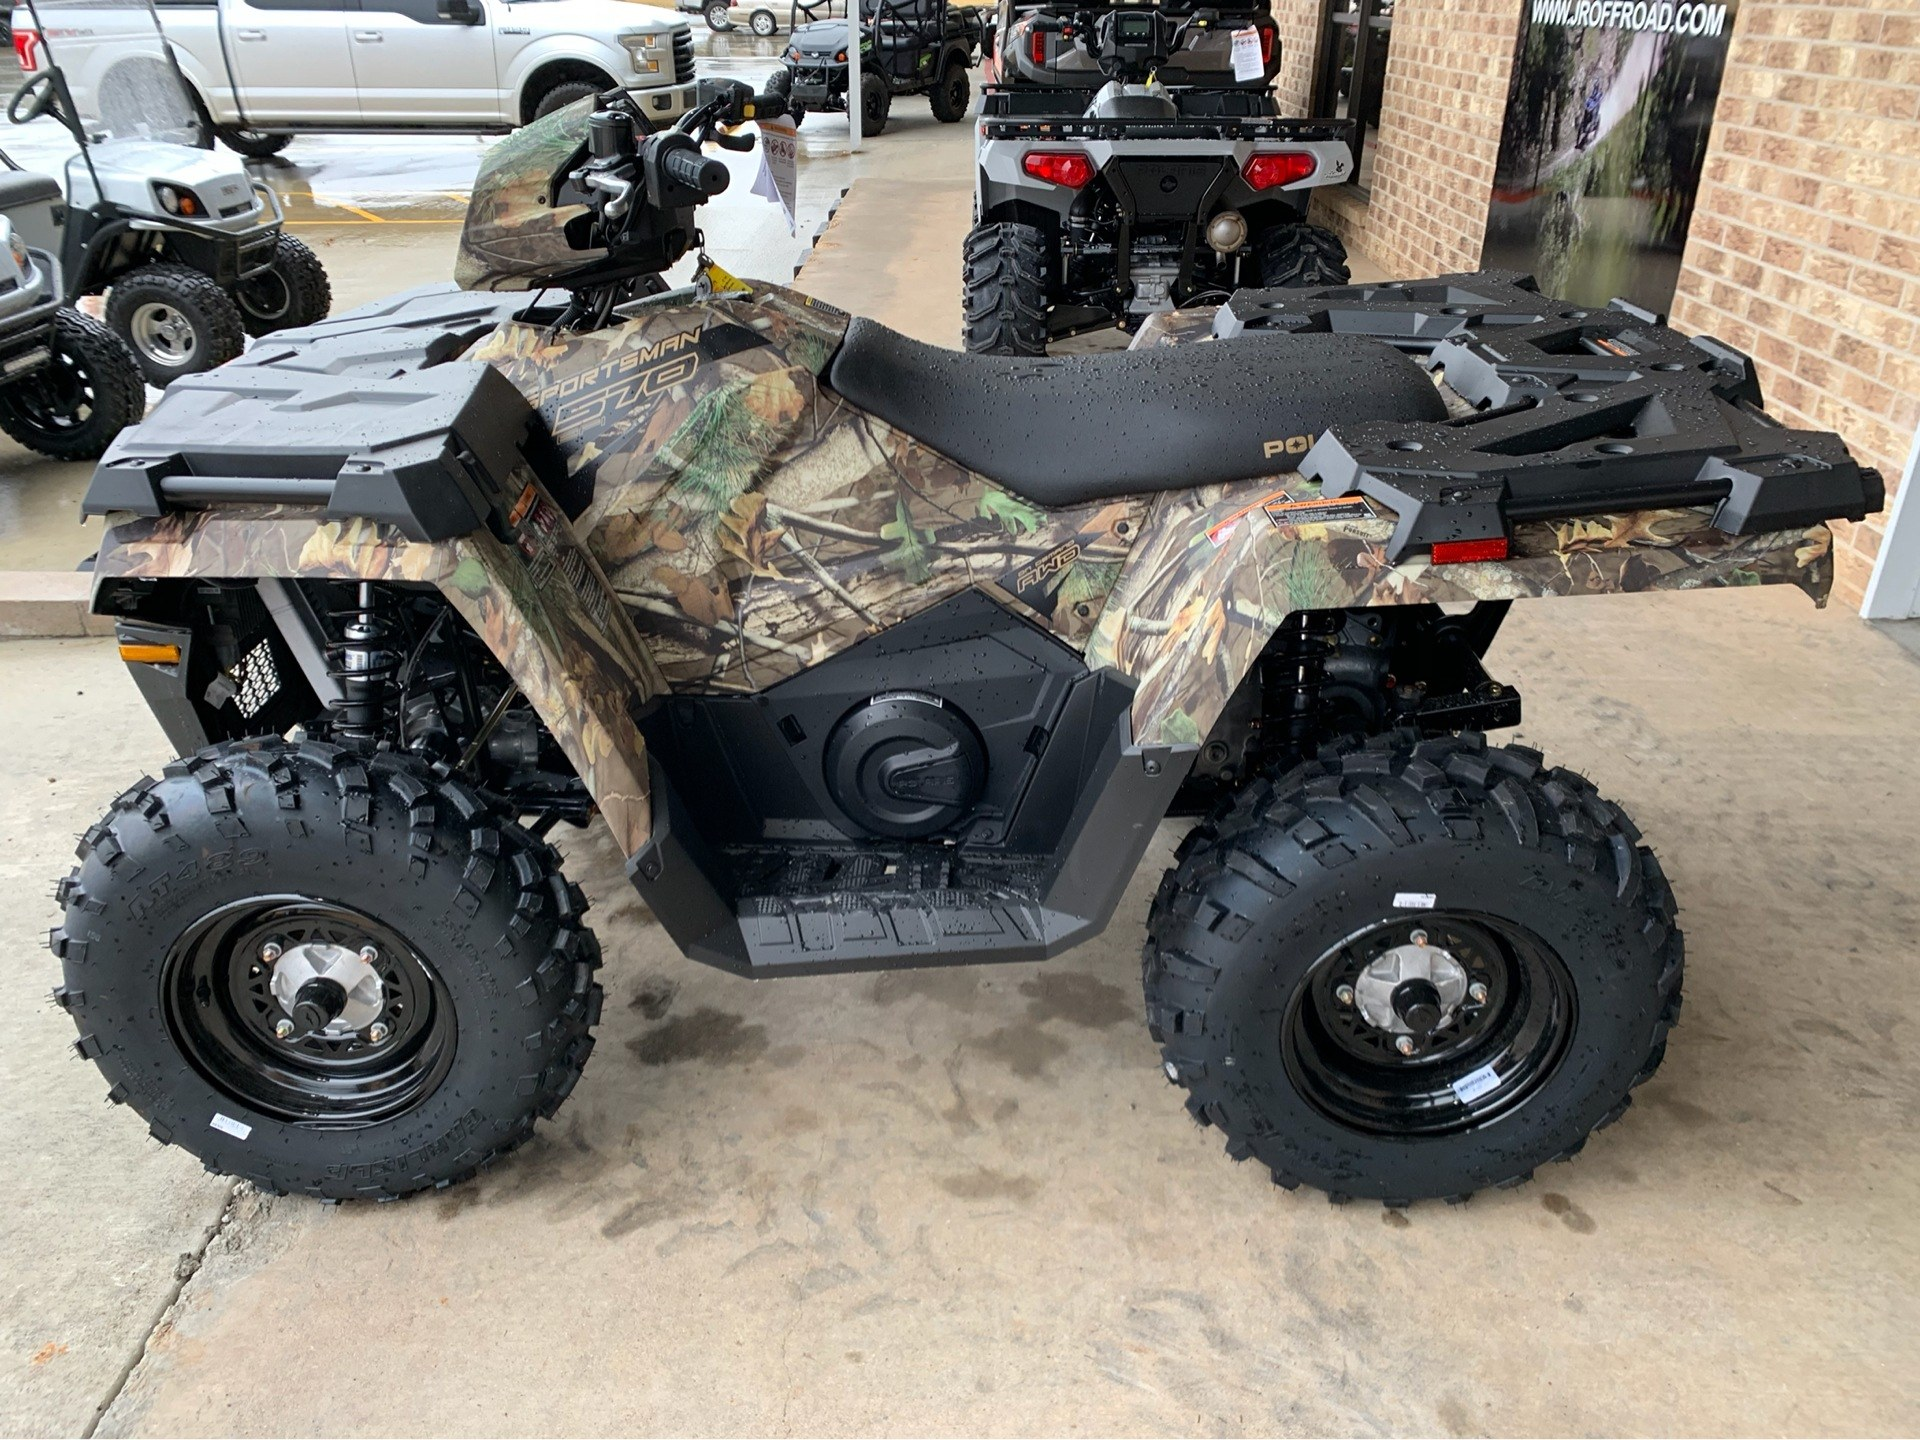 2019 Polaris Sportsman 570 Camo in Marshall, Texas - Photo 2